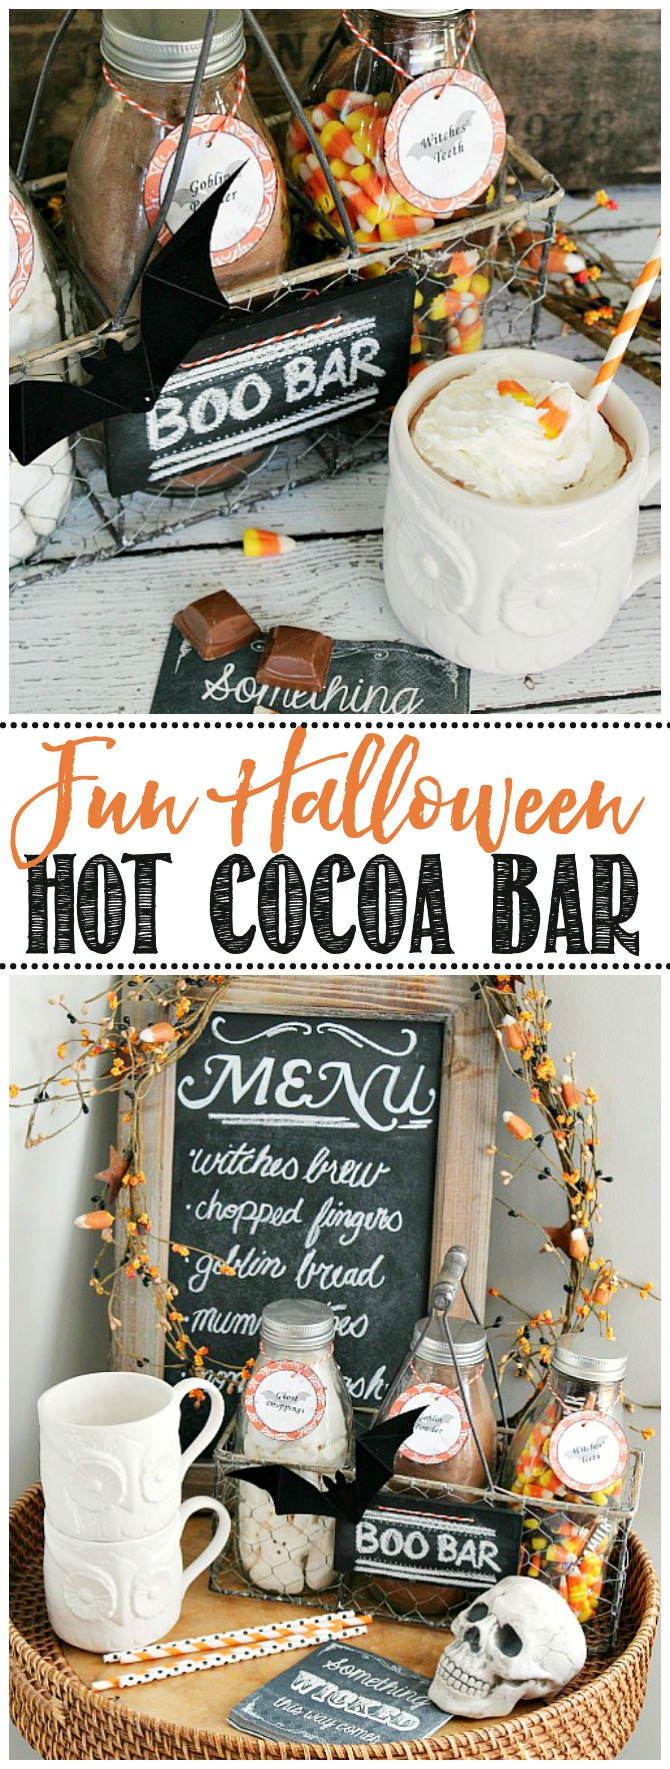 Cute Halloween hot chocolate bar with milk bottles in a crate.